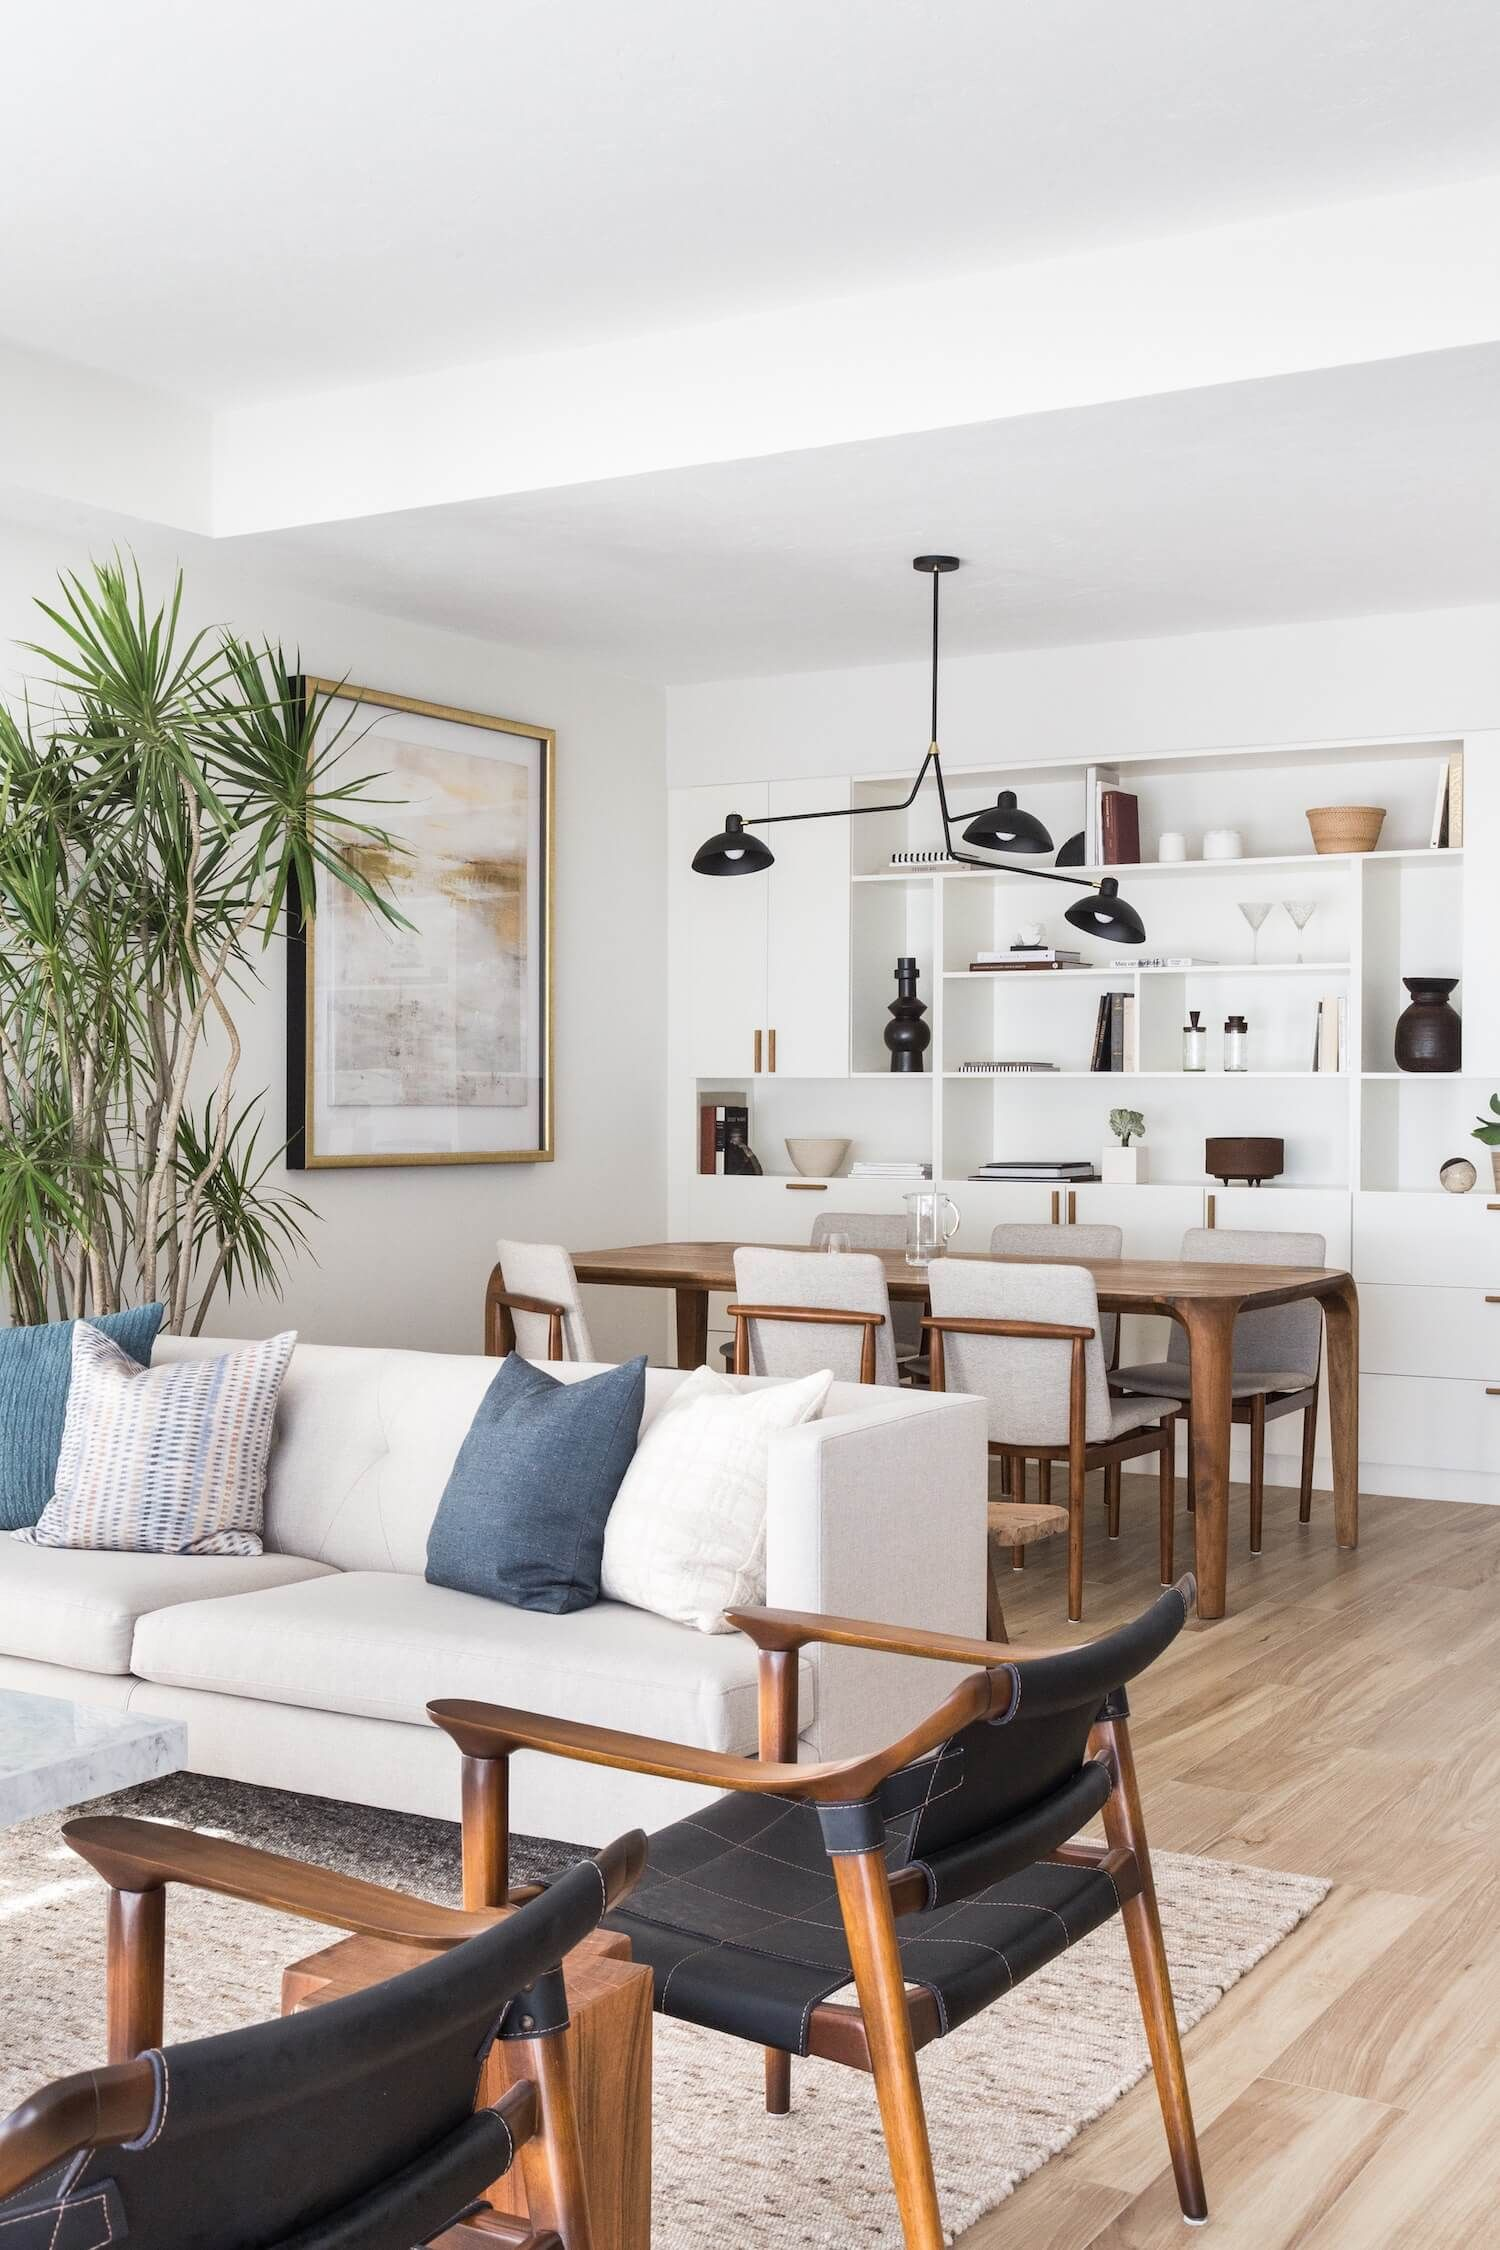 Miami penthouse by avenue design studio urban living pinterest